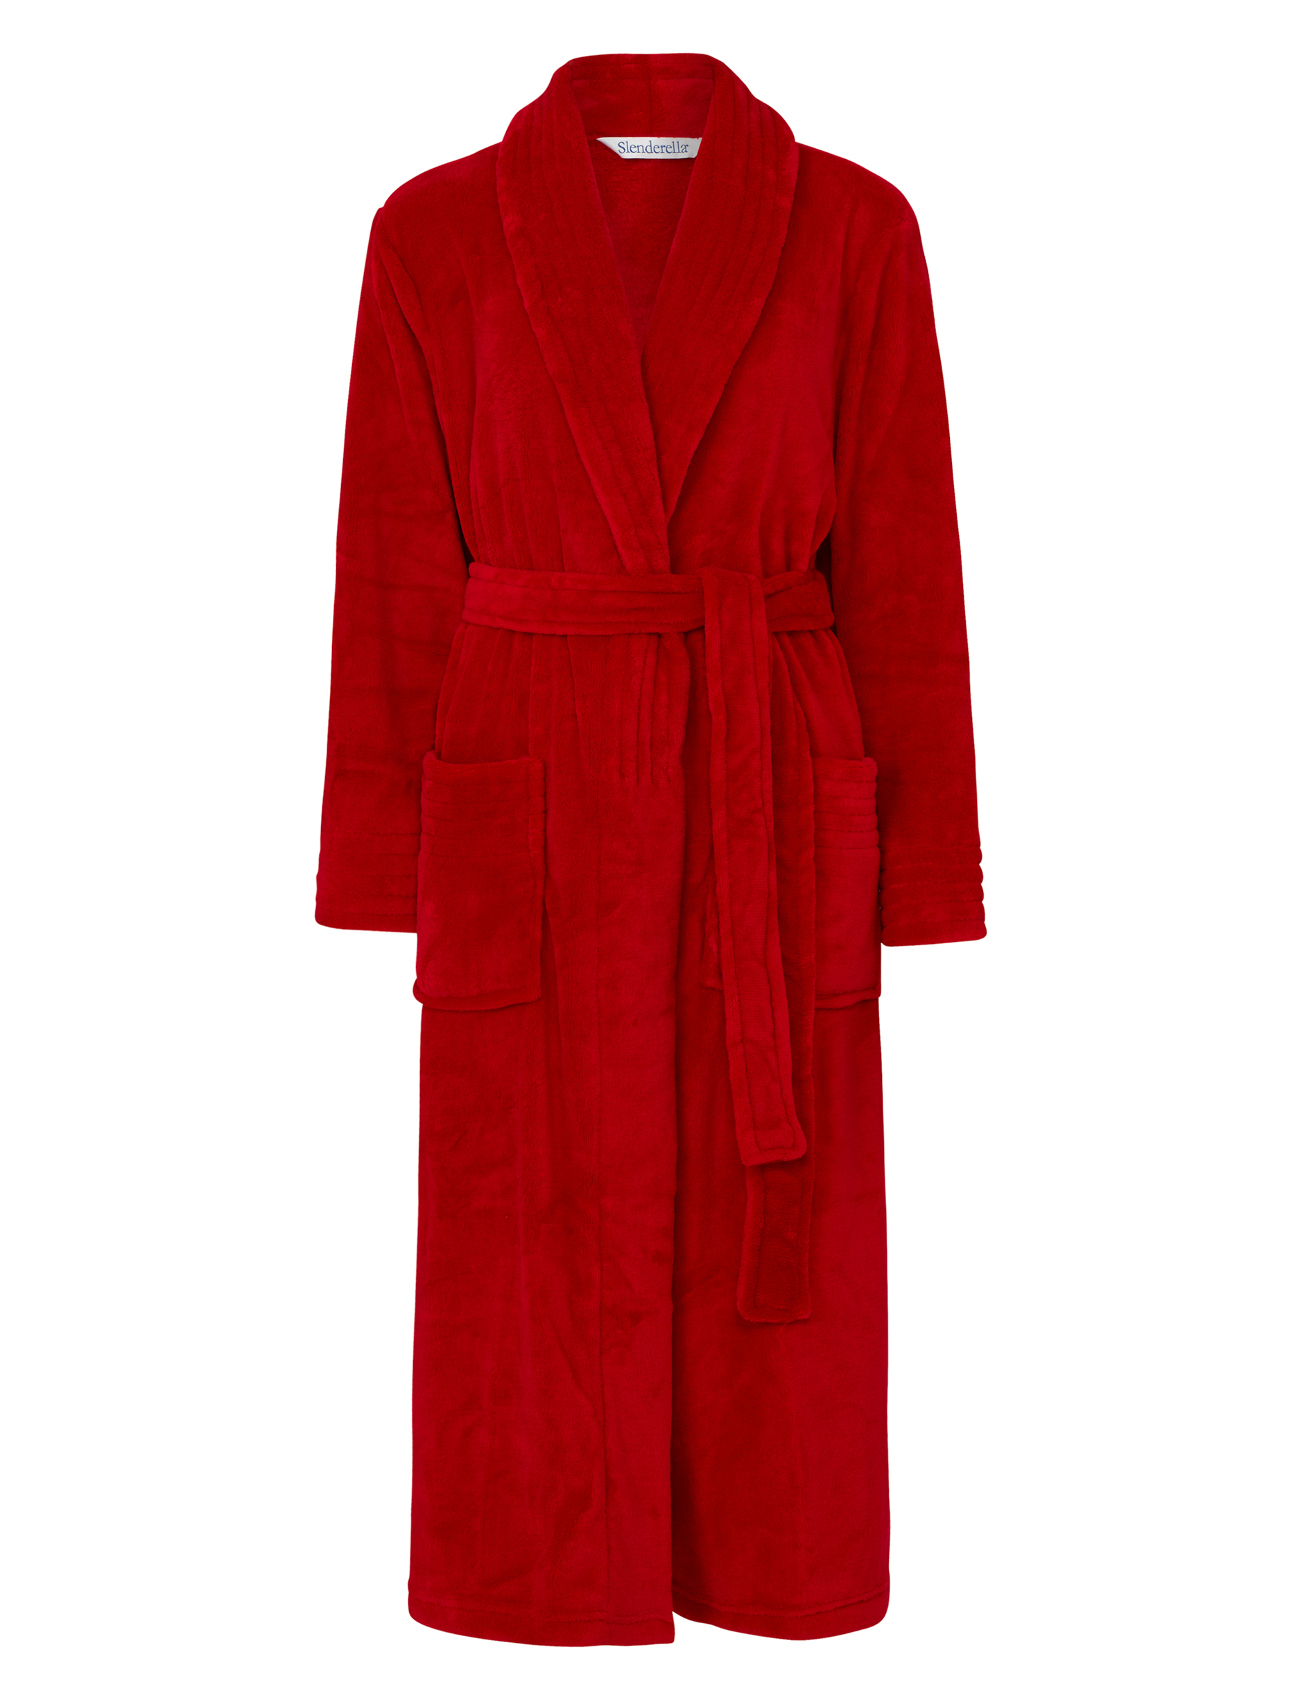 Dressing Gown Womens Wrap Around Soft Fleecy Plain Bath Robe Pockets